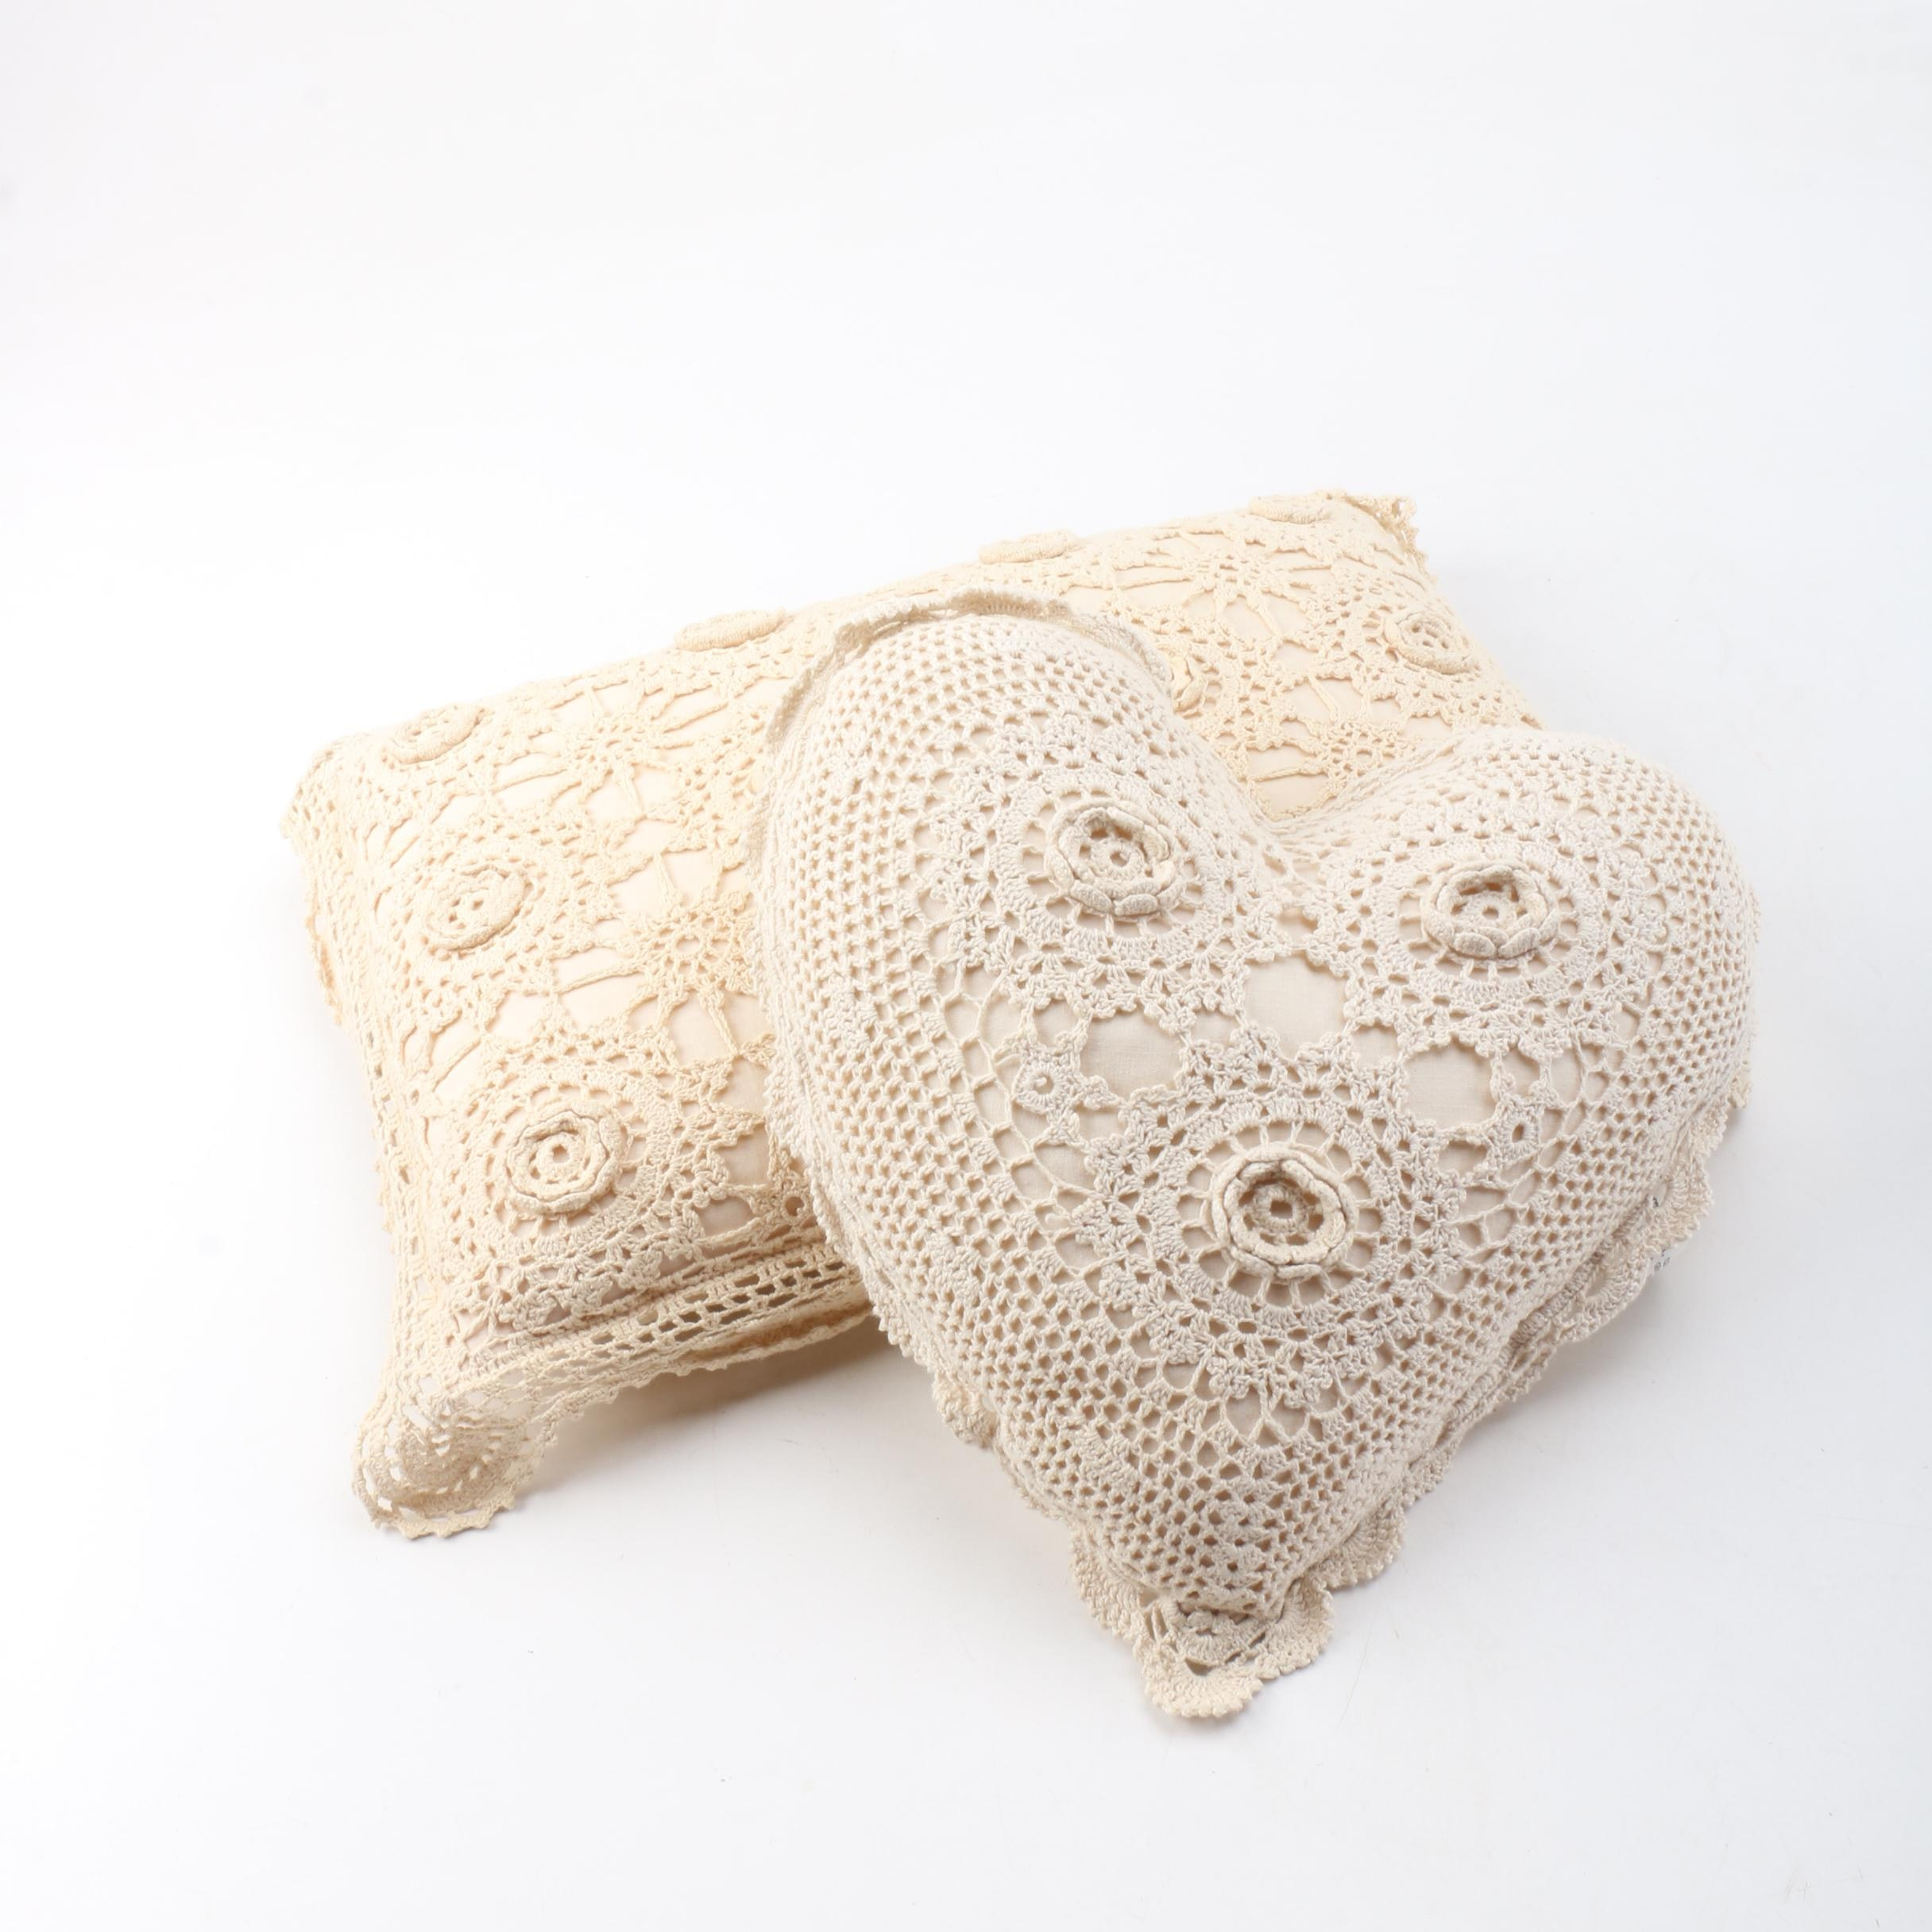 Crochet Covered Accent Pillows